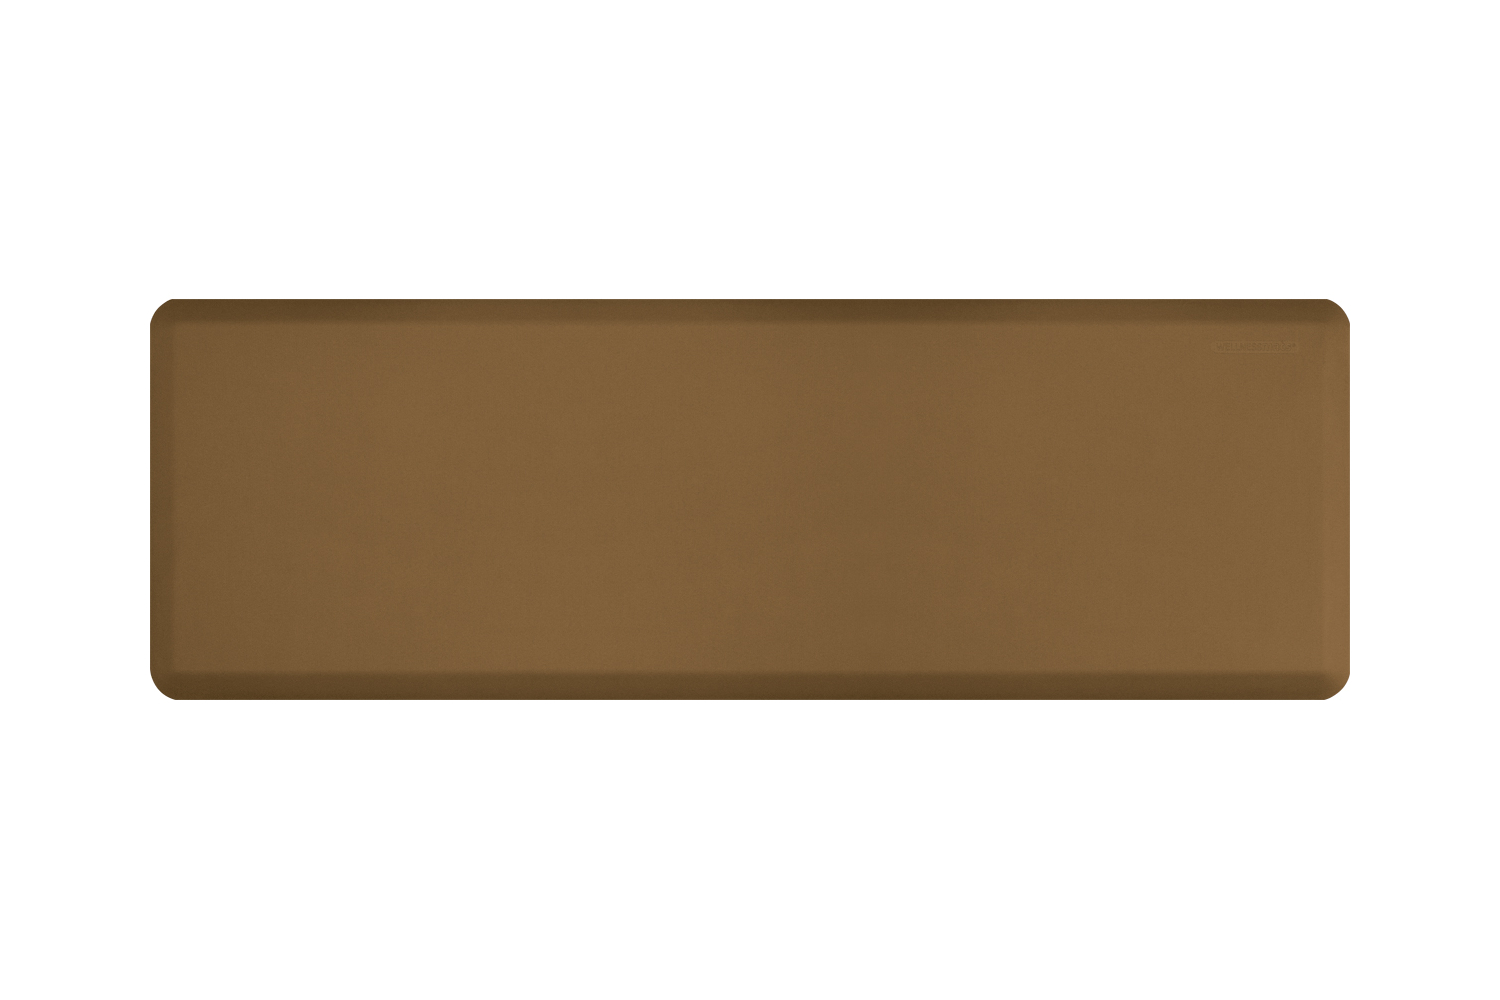 Wellness Anti-Fatigue Kitchen Mat - 6 x 2 ft. - Tan